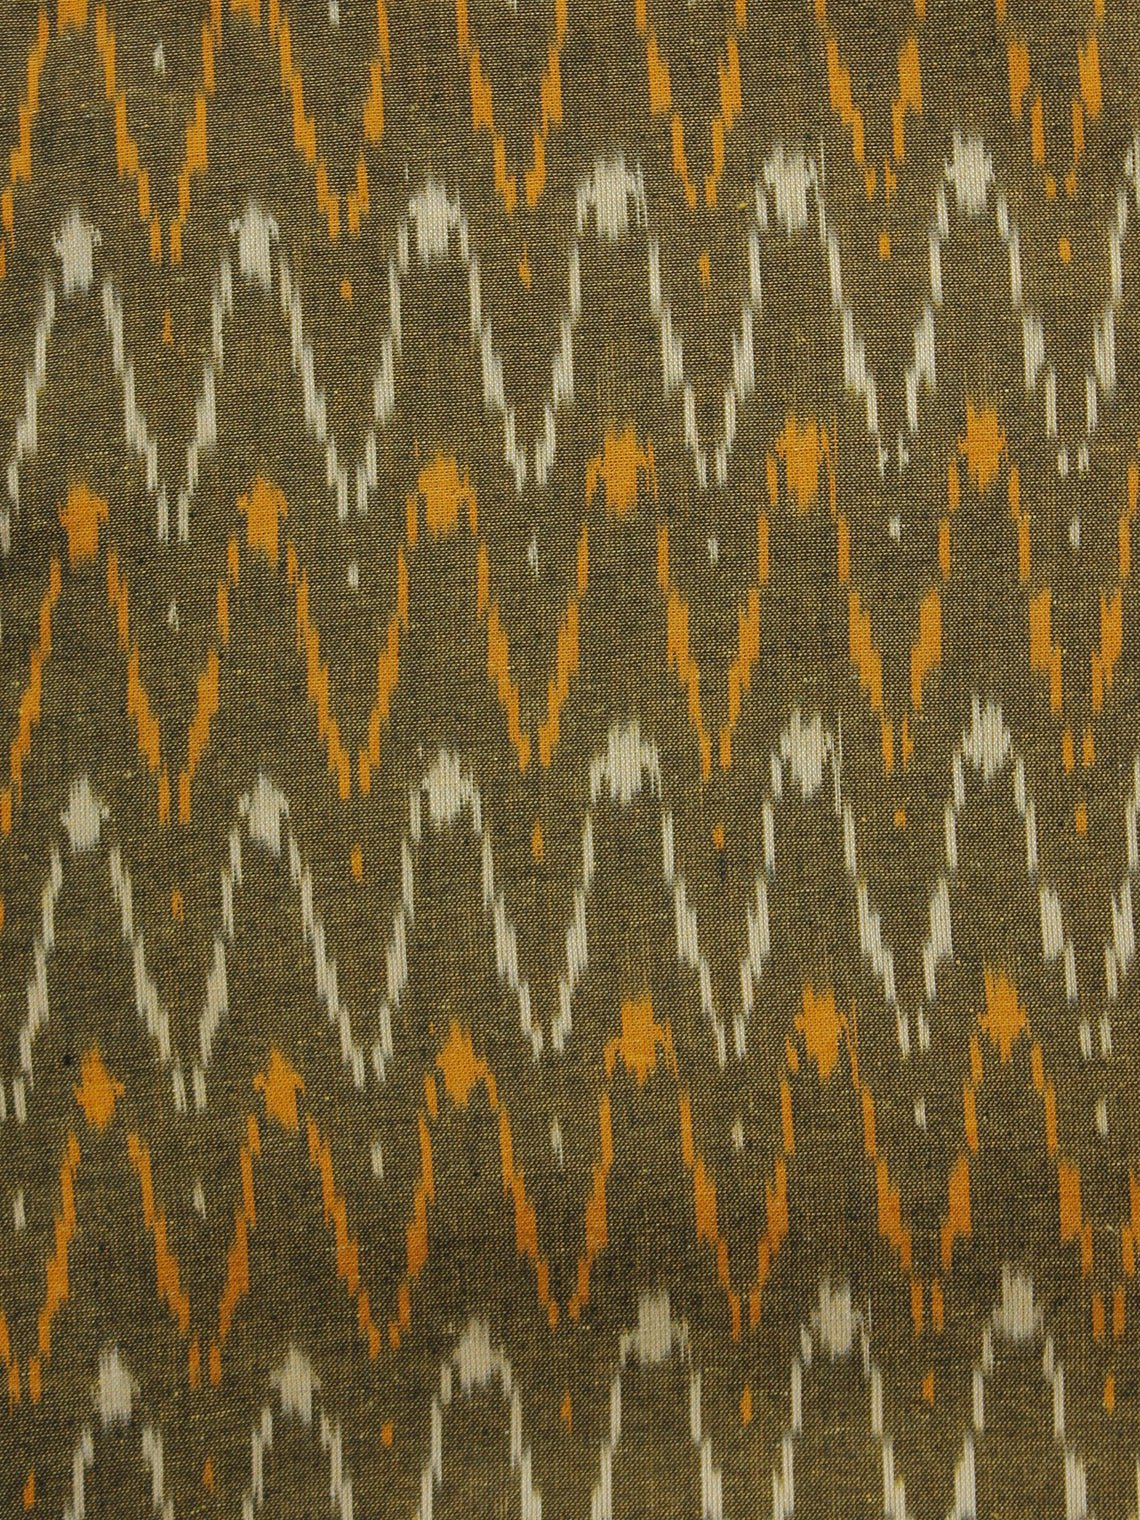 Peanut Brown Orange Ivory Pochampally Hand Woven Ikat Fabric Per Meter - F002F955